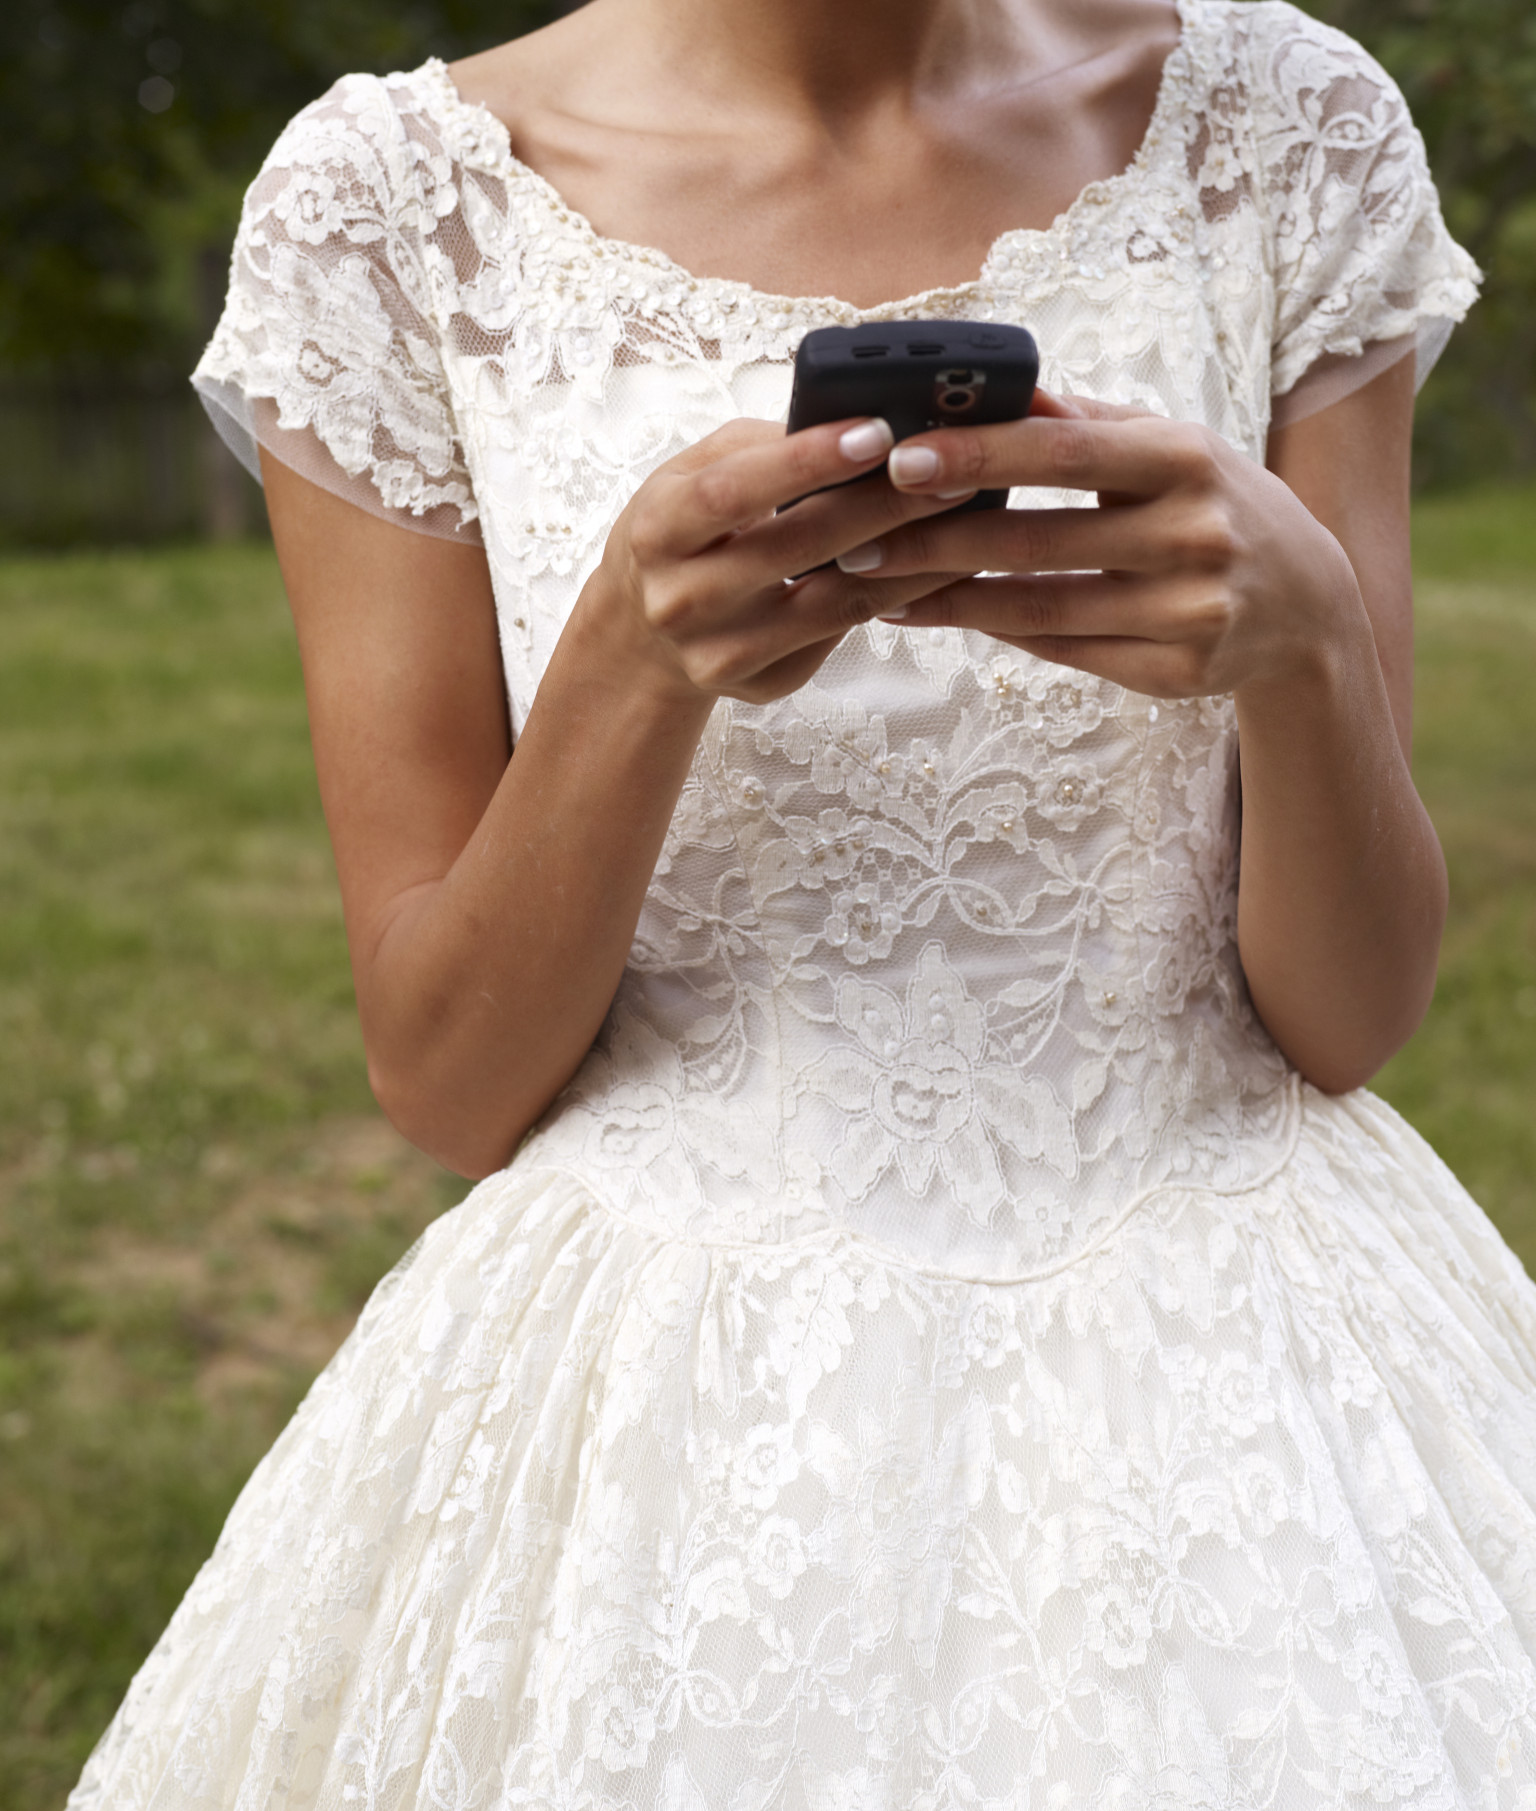 Wedding Hairstyle App: Wedding Photo Apps: 10 Apps That Collect Your Guests